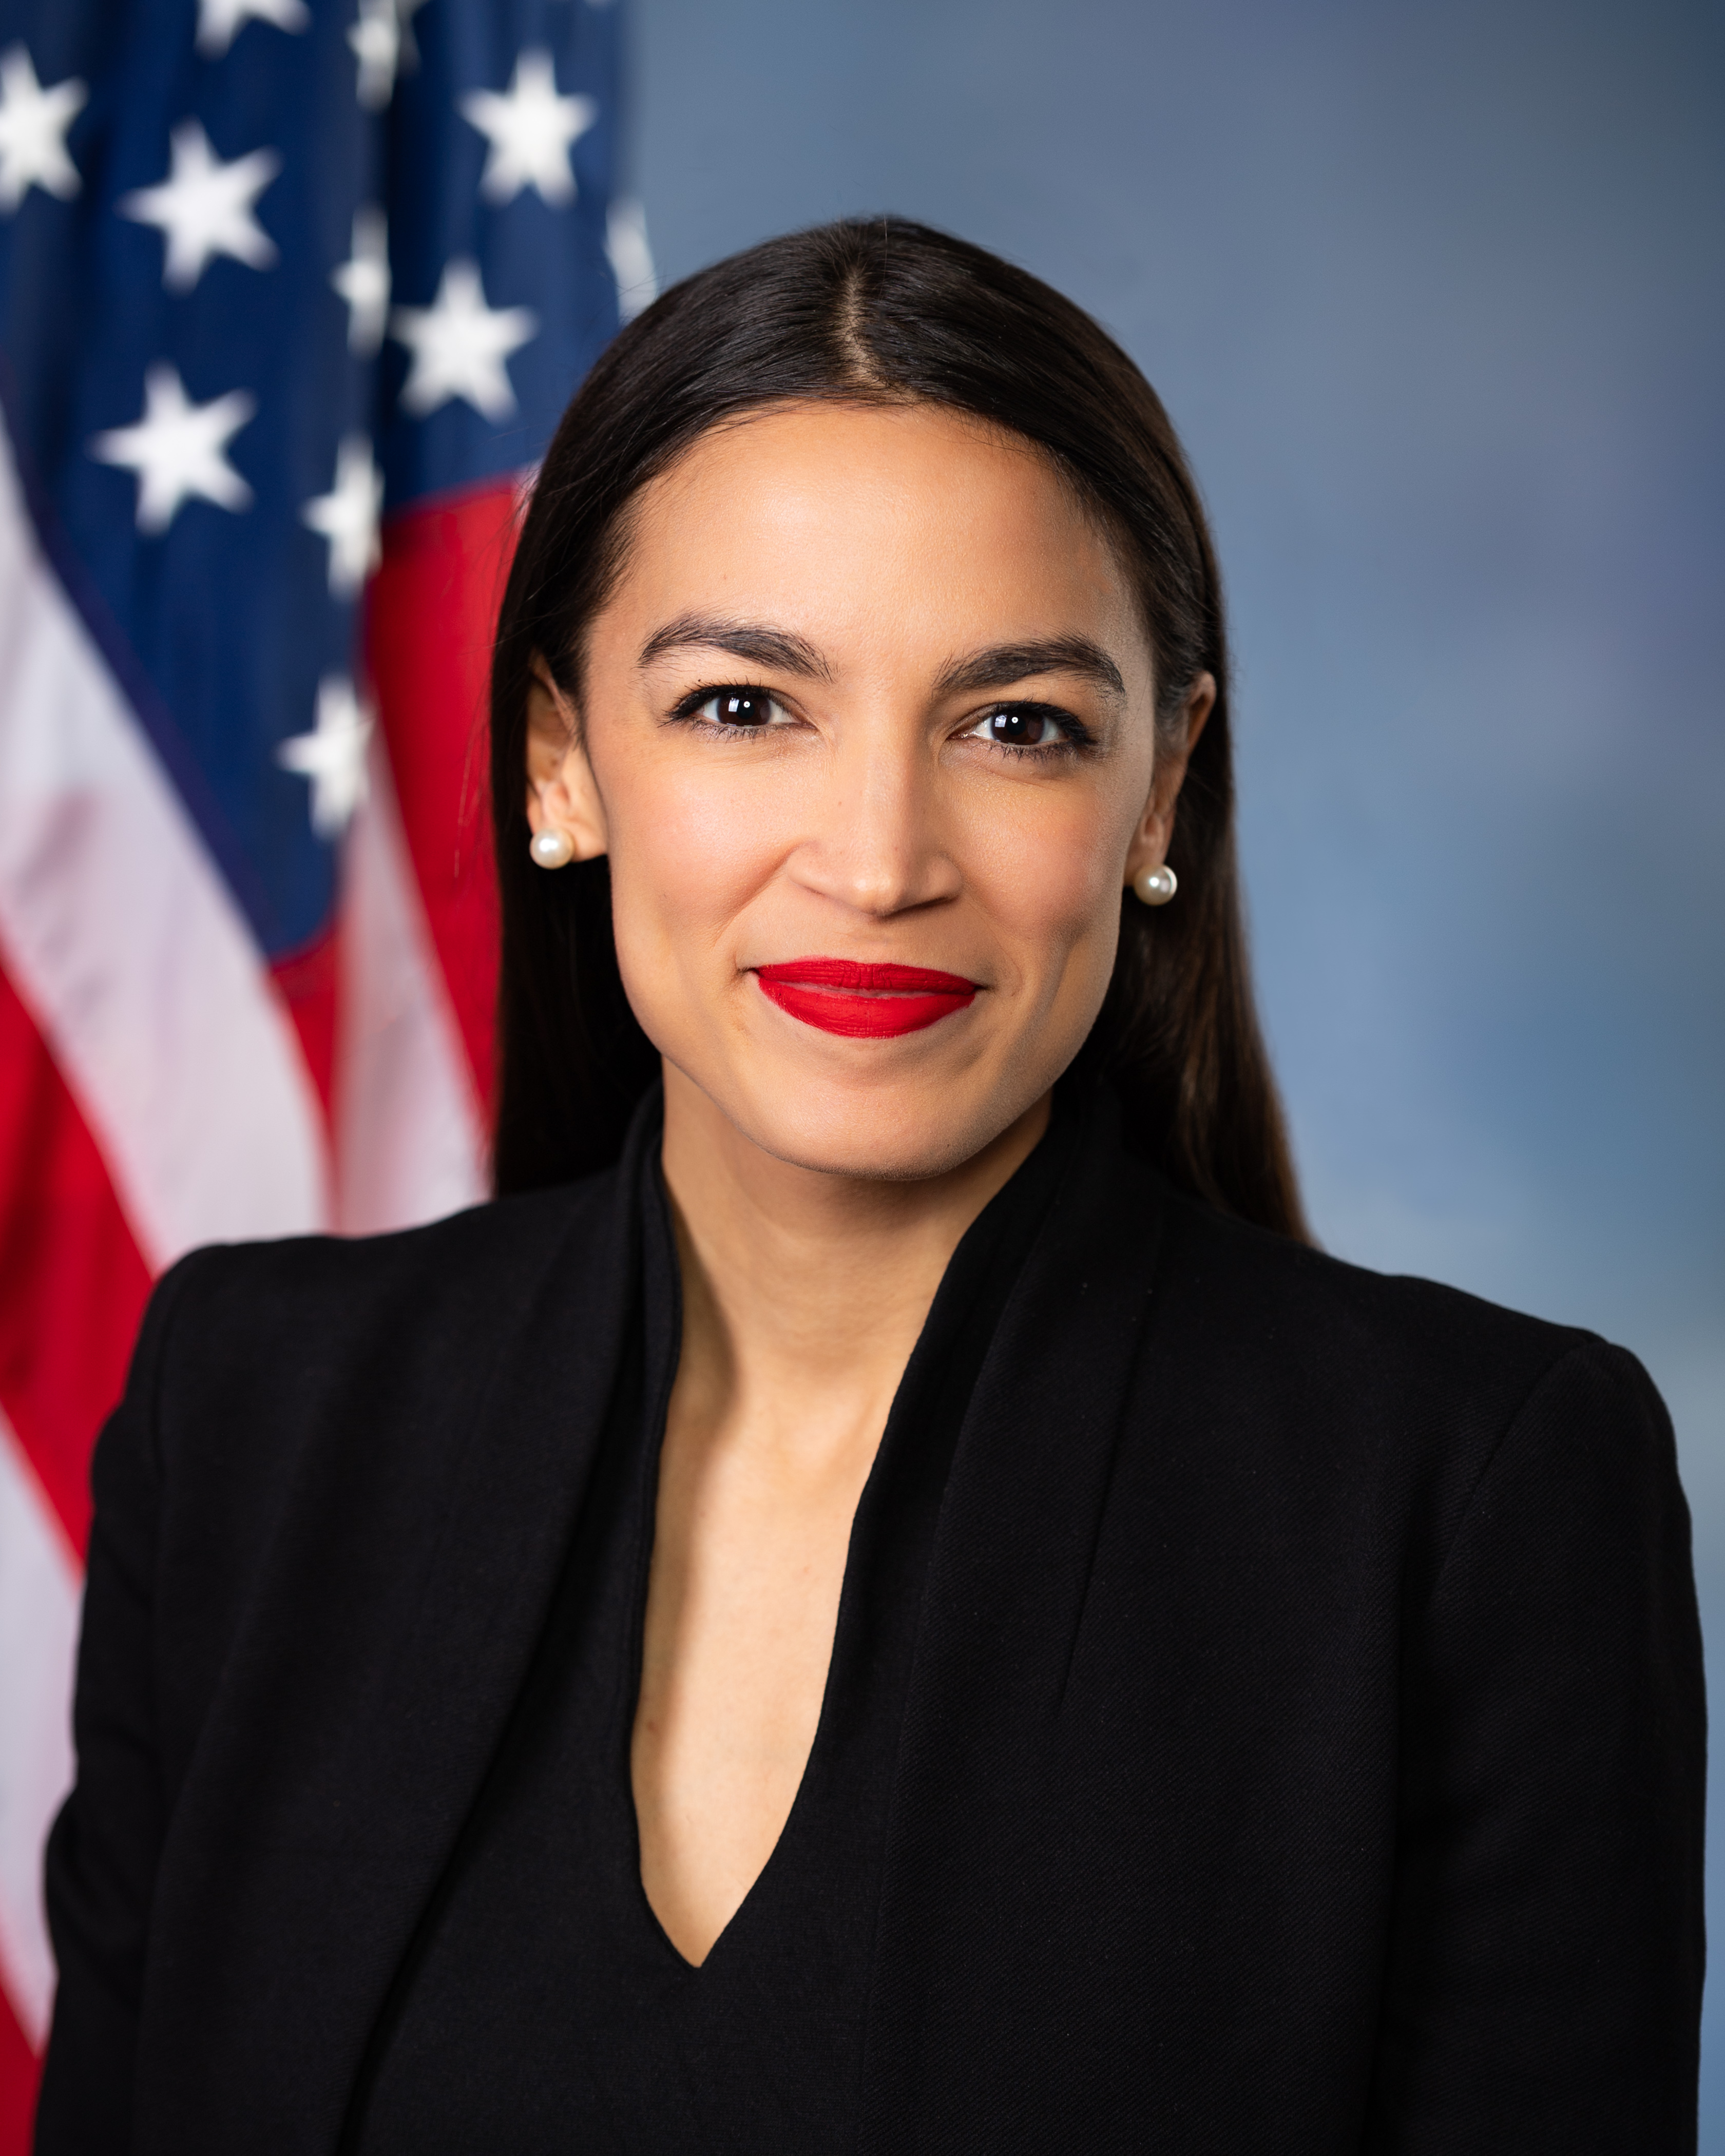 Alexandria Ocasio-Cortez is a superhero in real life and now in comic books, too